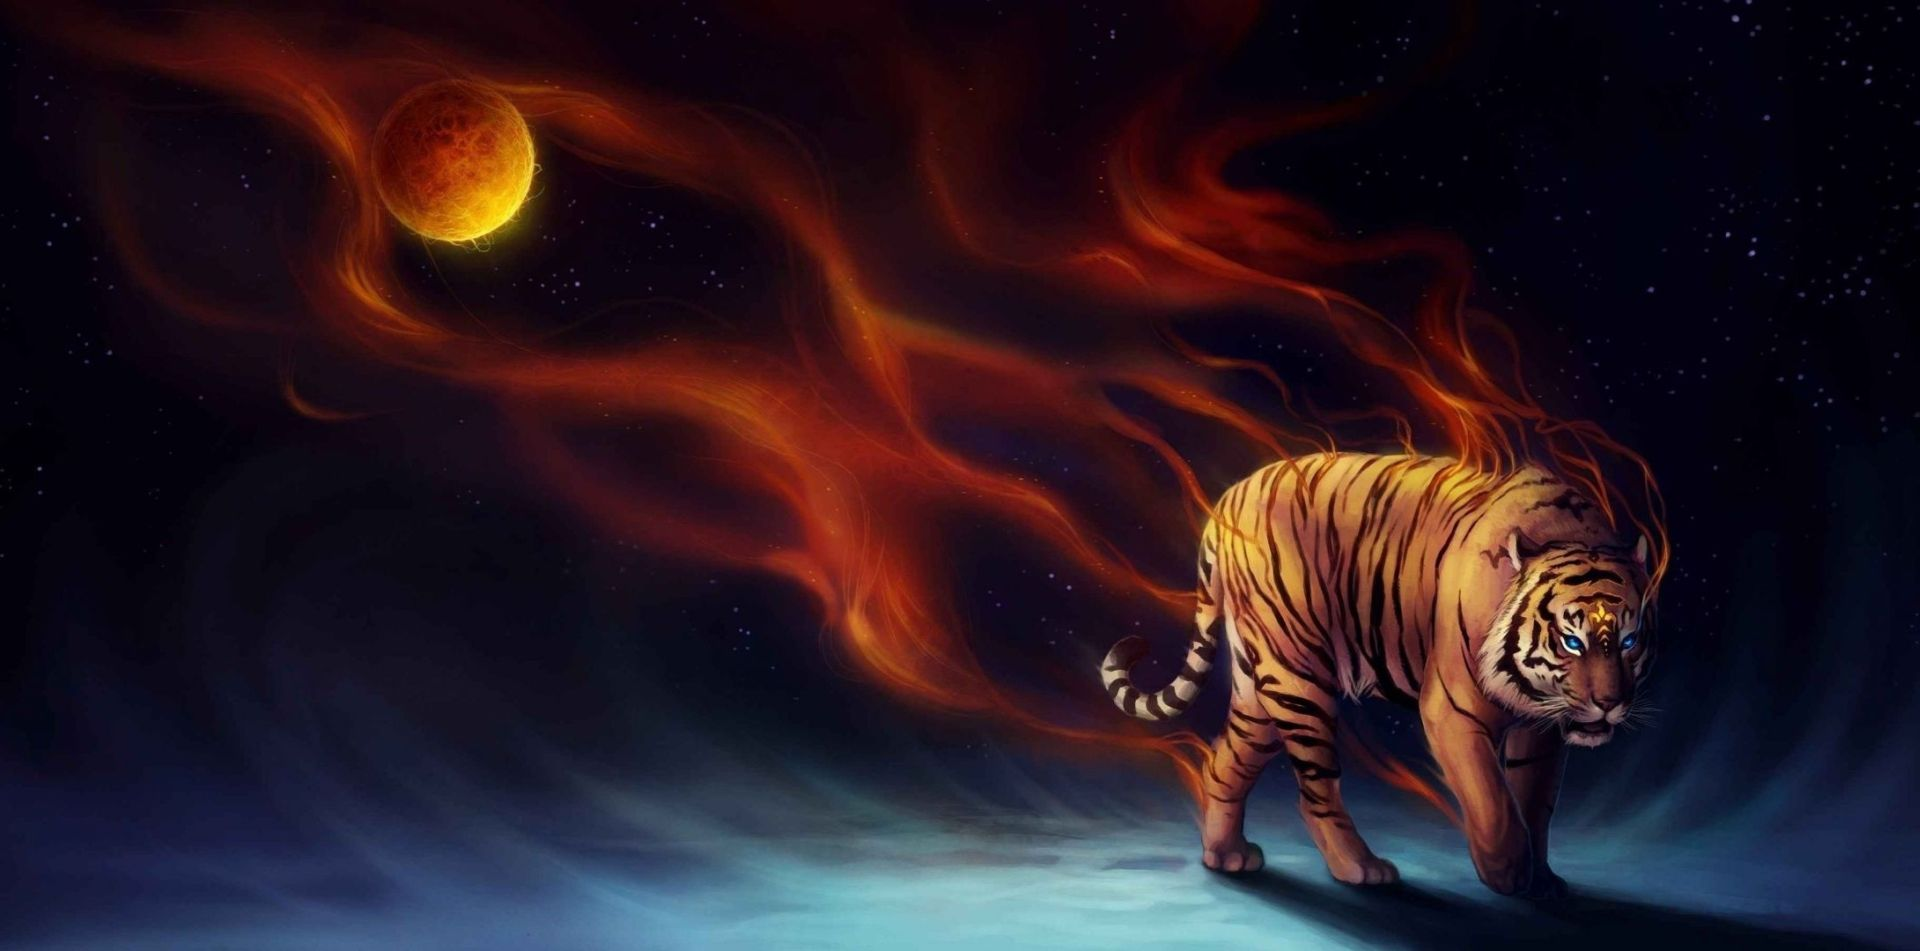 52 Tiger Art Wallpapers Wallpaperboat